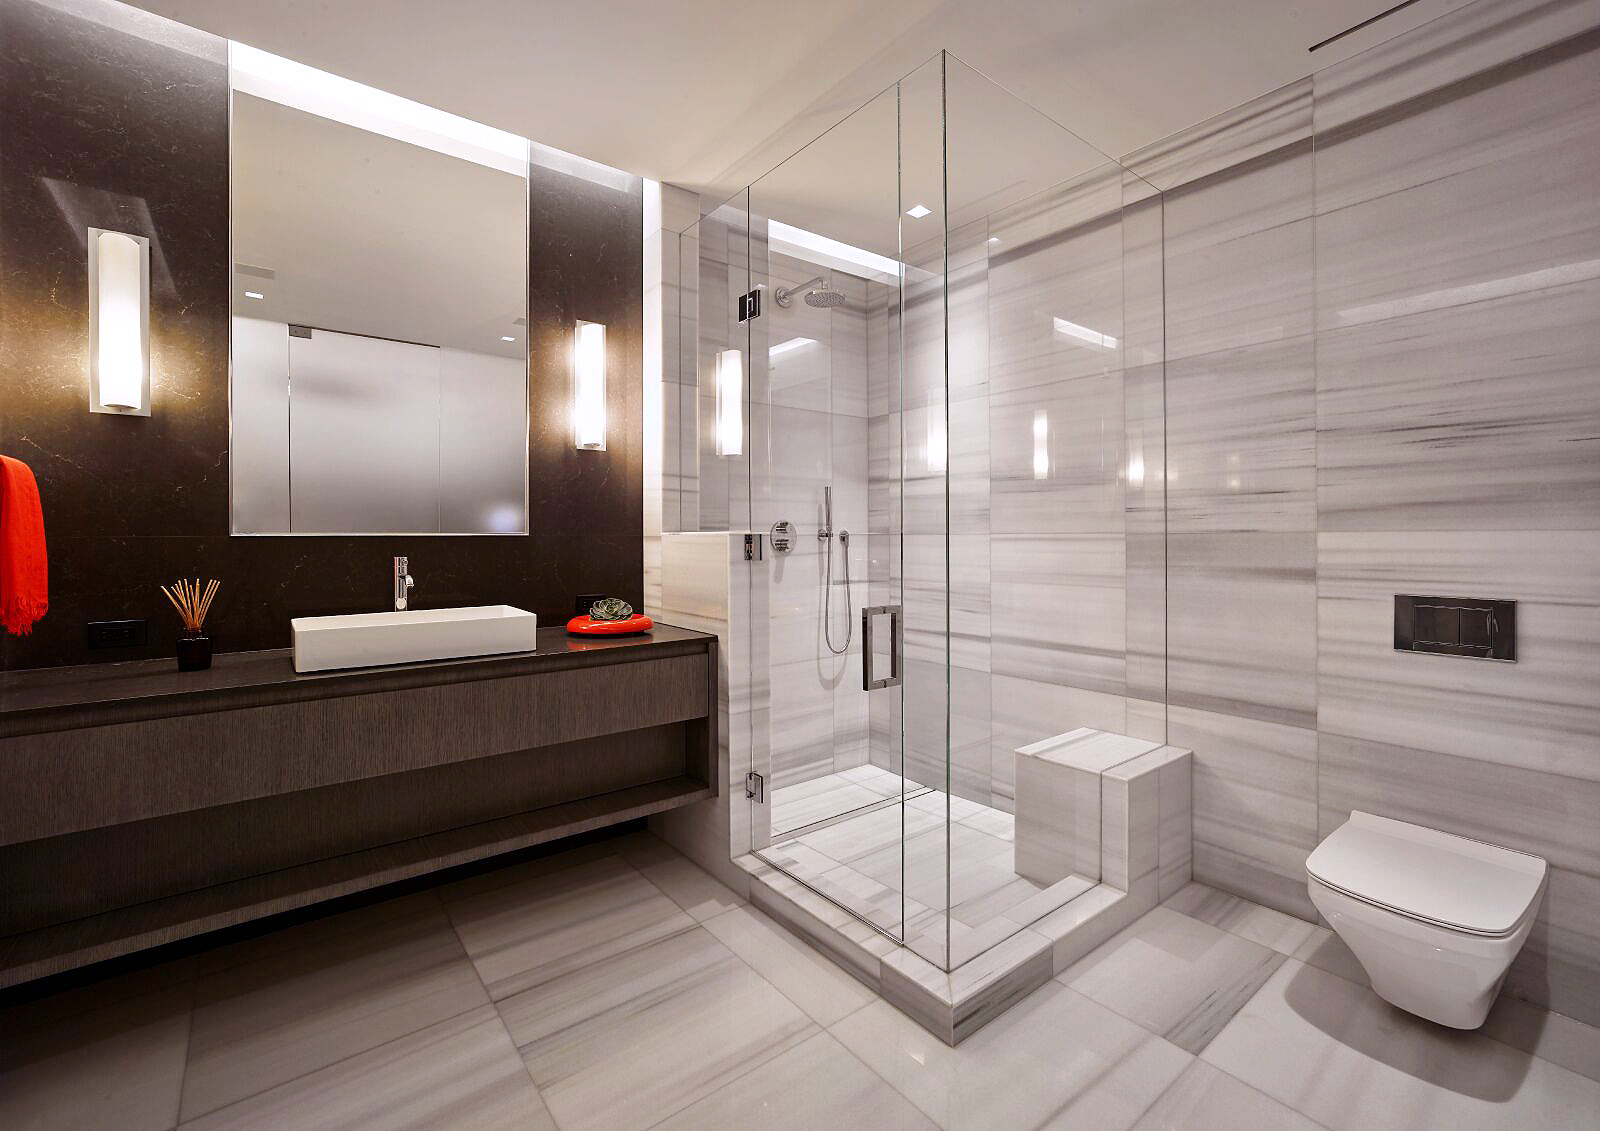 guestbedroom_office bath I.png